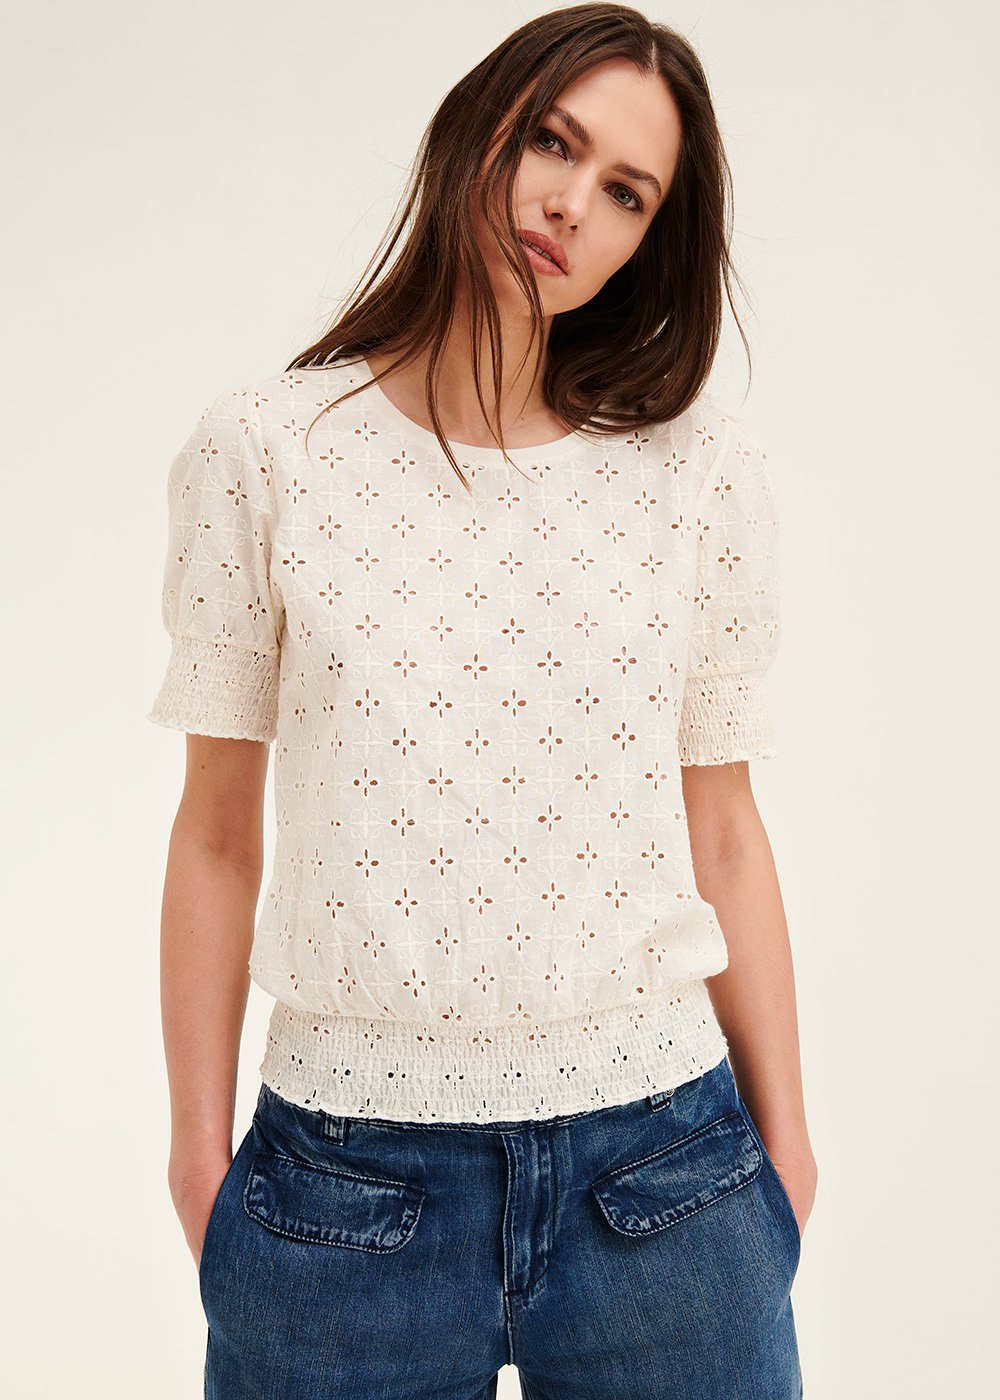 Simon broderie anglaise t-shirt - Mousse - Woman